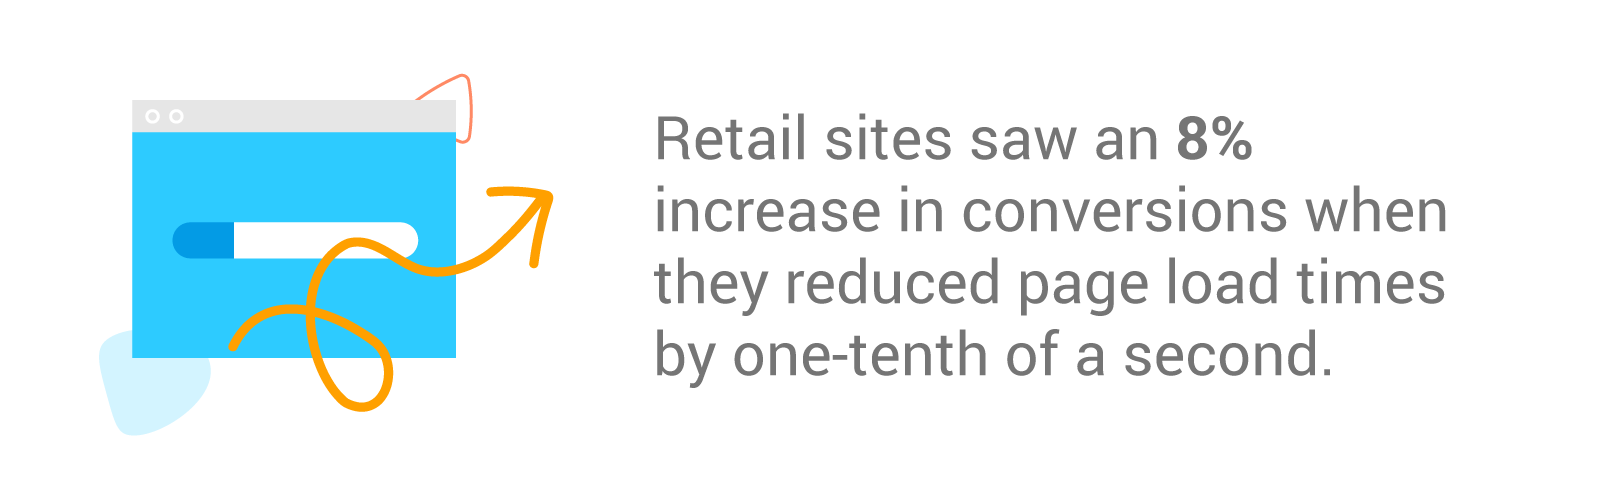 A 2019 study found that retail sites saw 8% more conversions when they reduced their mobile site load times by one-tenth of a second. And travel sites boosted conversions by just over 10%